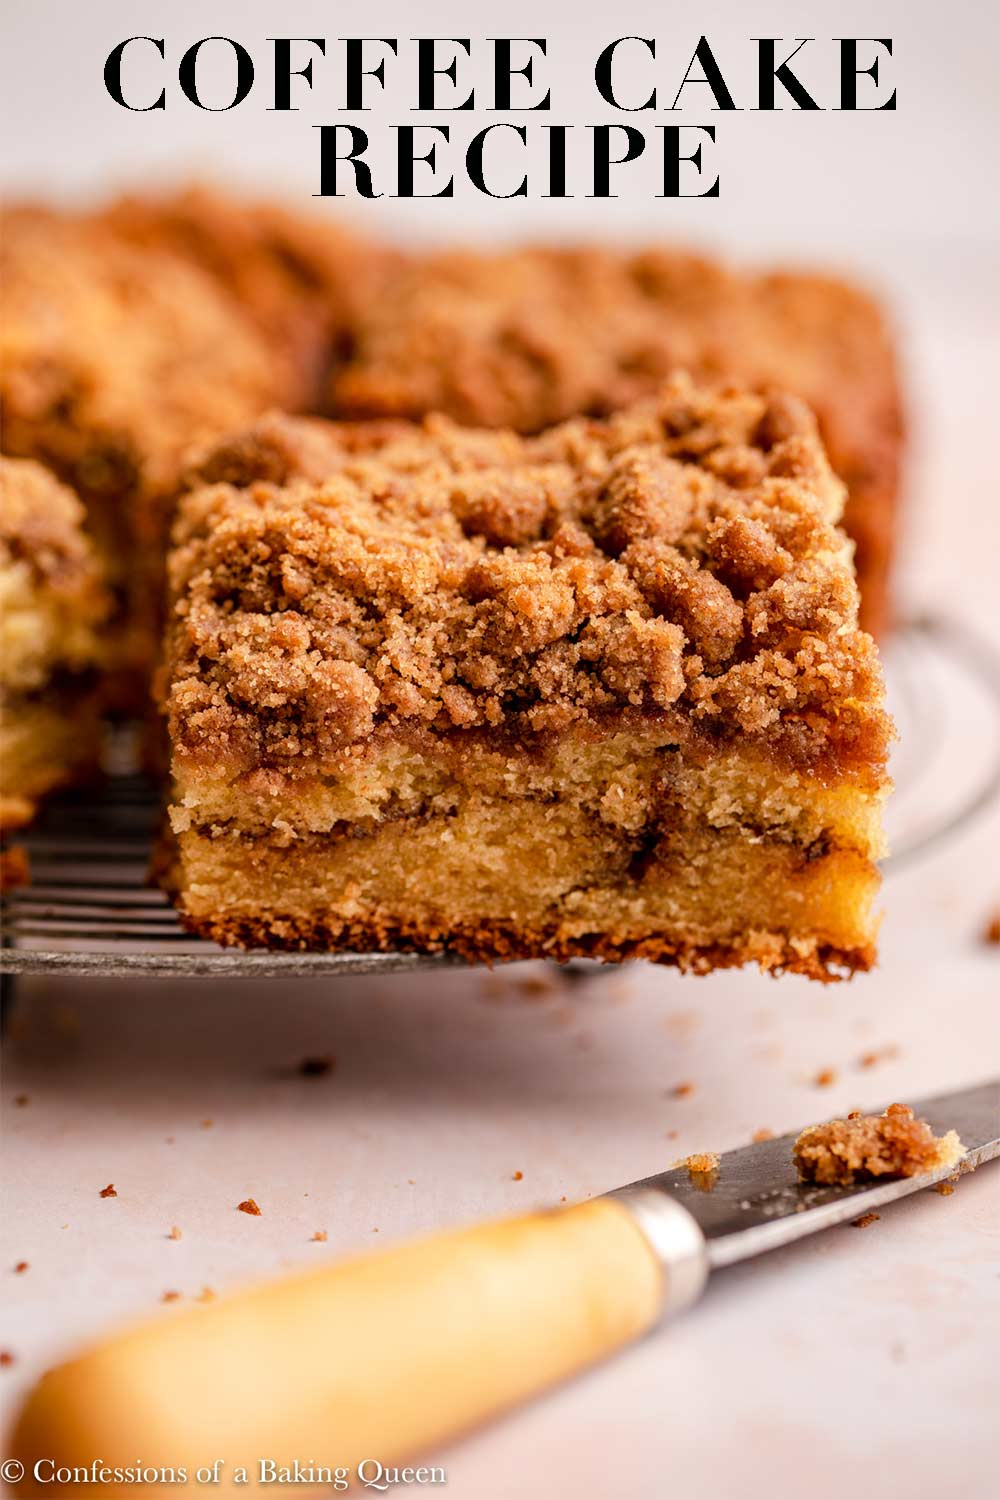 Sour Cream Coffee Cake Recipe In 2020 Coffee Cake Recipes Sour Cream Coffee Cake Coffee Cake